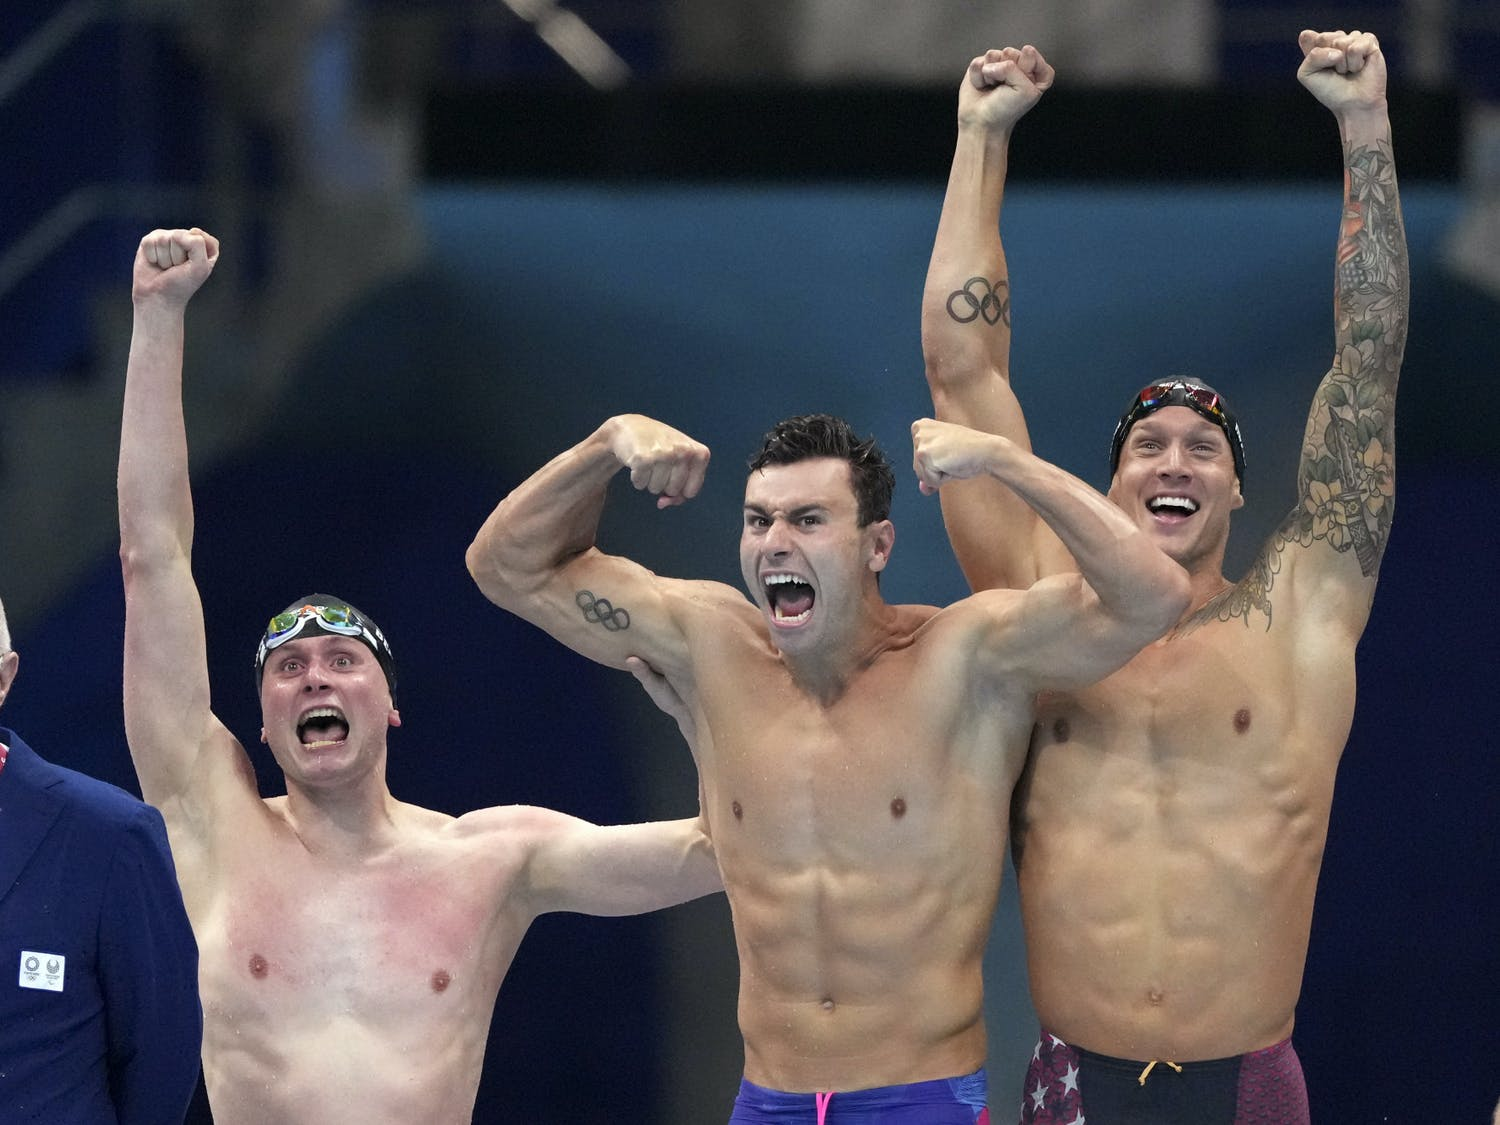 United States men's 4x100m freestyle relay team of Bowen Beck, Blake Pieroni, and Caeleb Dressel react after winning the gold medal at the 2020 Summer Olympics, Monday, July 26, 2021, in Tokyo, Japan. (AP Photo/Matthias Schrader)